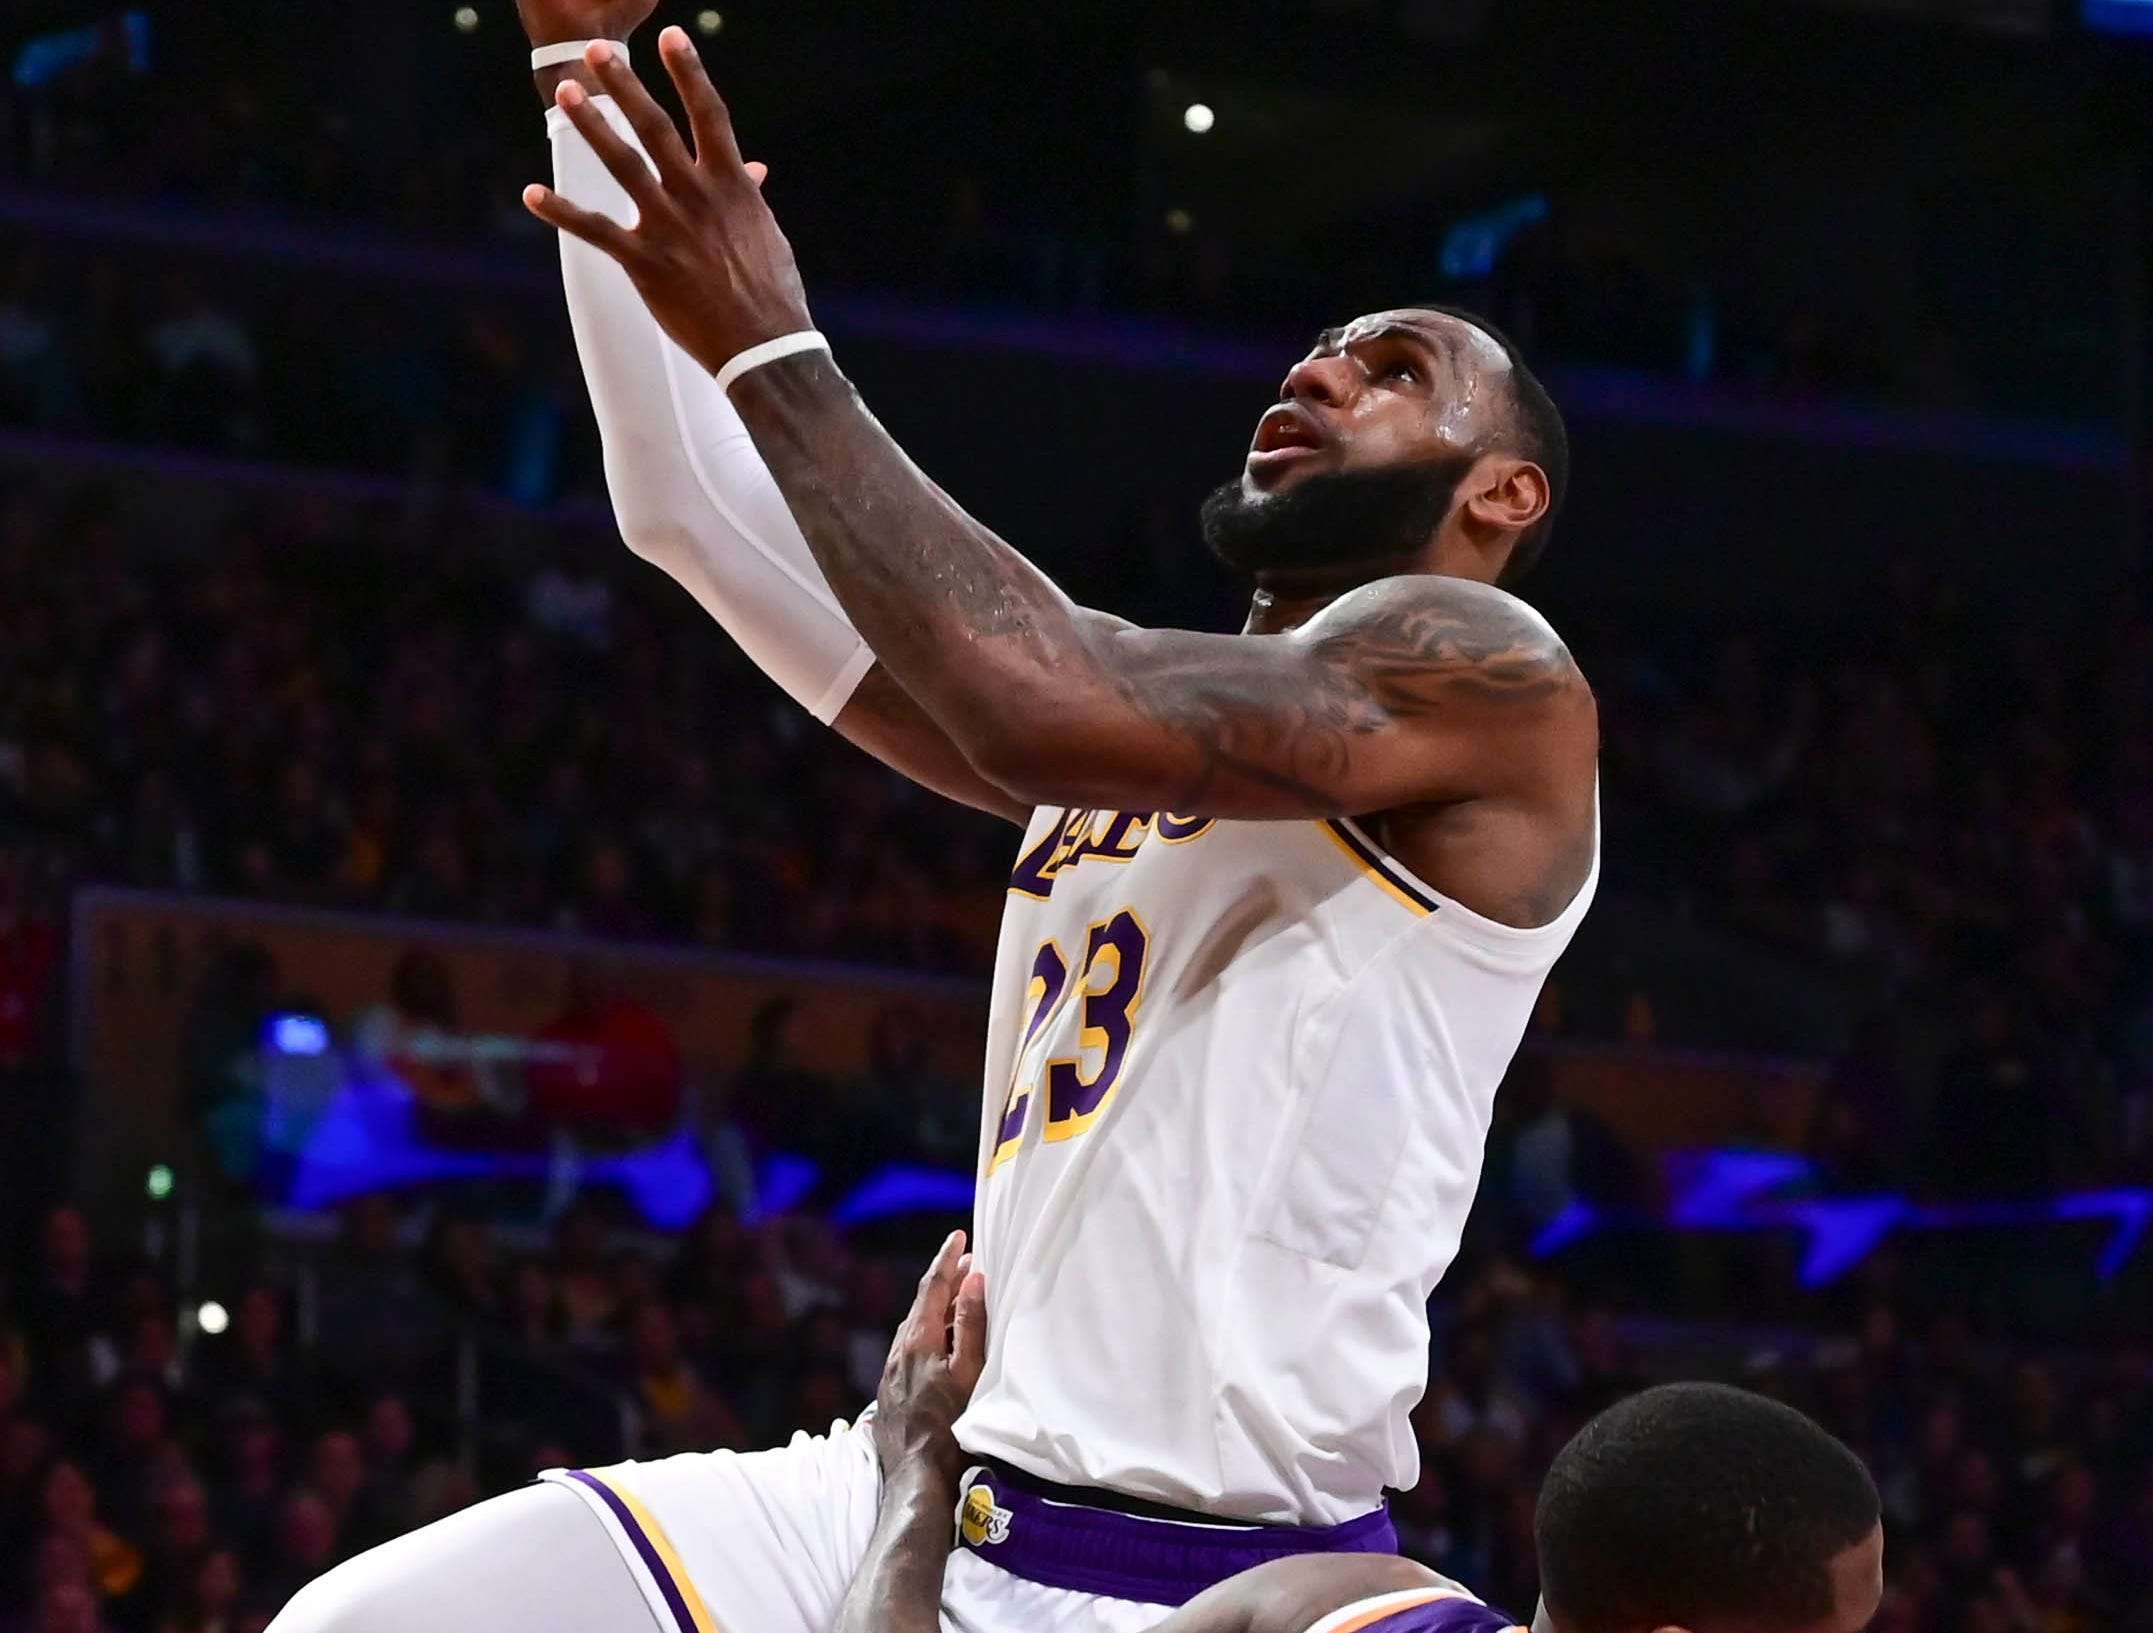 Dec 2, 2018; Los Angeles, CA, USA; Los Angeles Lakers forward LeBron James (23) scores past Phoenix Suns guard Jamal Crawford (11) during the third quarter at Staples Center. Mandatory Credit: Robert Hanashiro-USA TODAY Sports